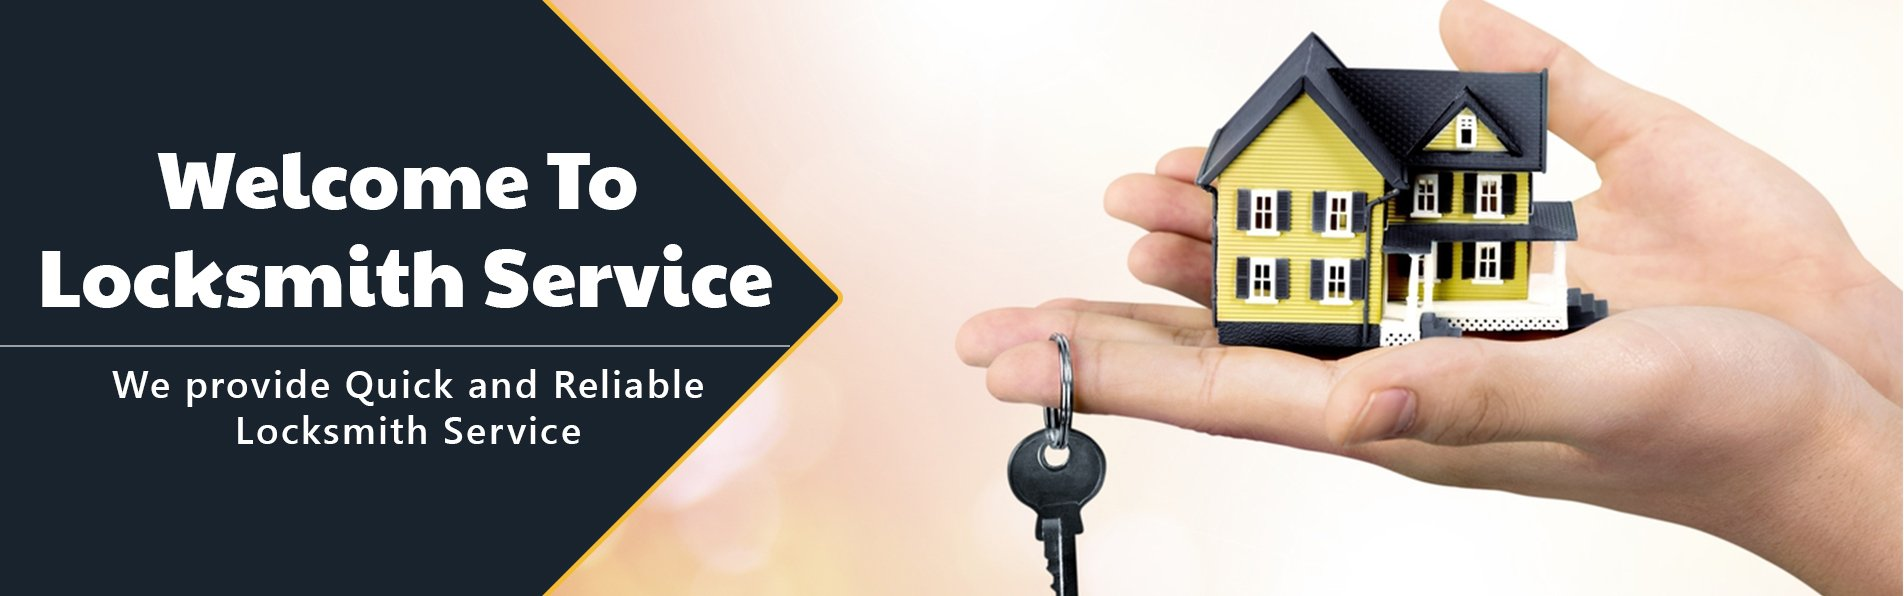 Runnemede Locksmith, Runnemede, NJ 856-545-9211